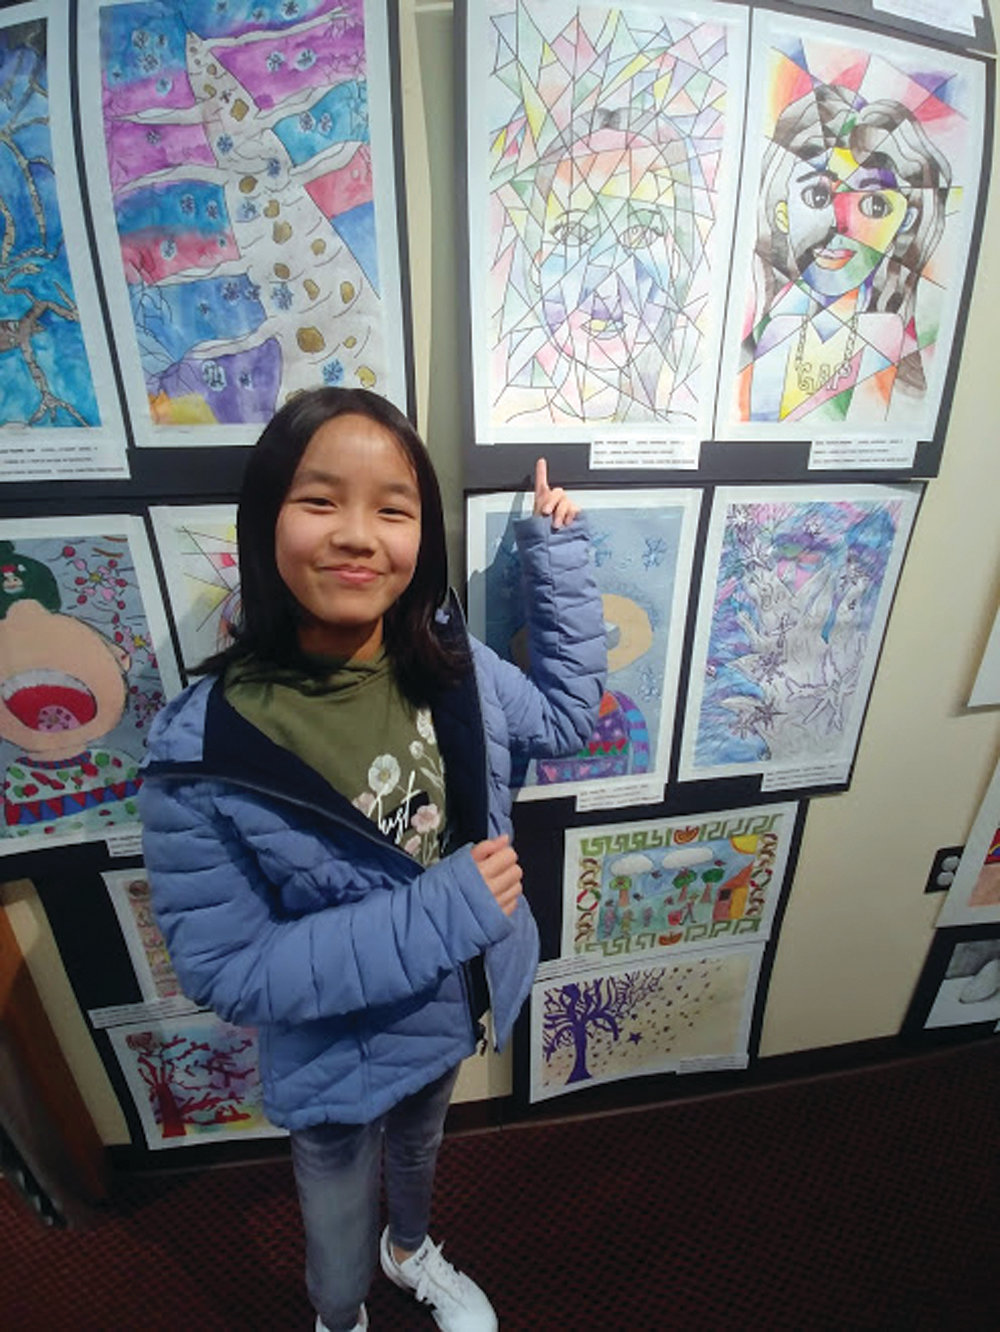 REPRESENTING WOODRIDGE: Tiffany Chen, a fifth-grader from Woodridge Elementary School, proudly showed off her artwork to friends and family.